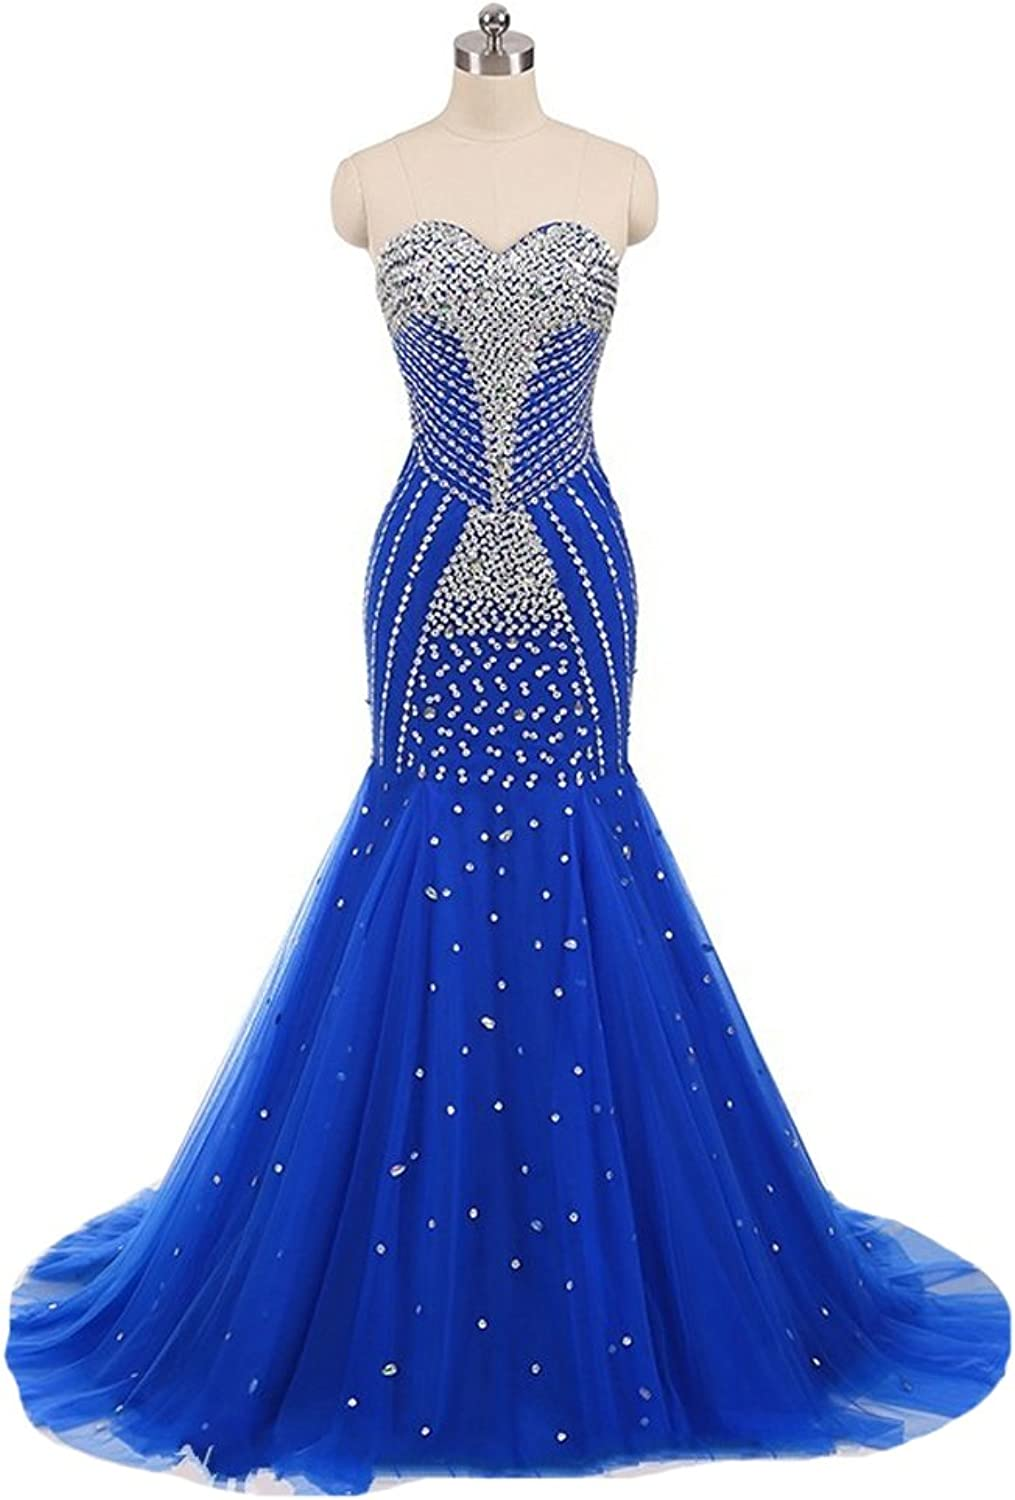 XPLE Sexy Mermaid Corset Prom Dresses 2018 Elegant Shiny Tulle Long Crystal Stones Elegant Formal Gowns for Pageant Women D48